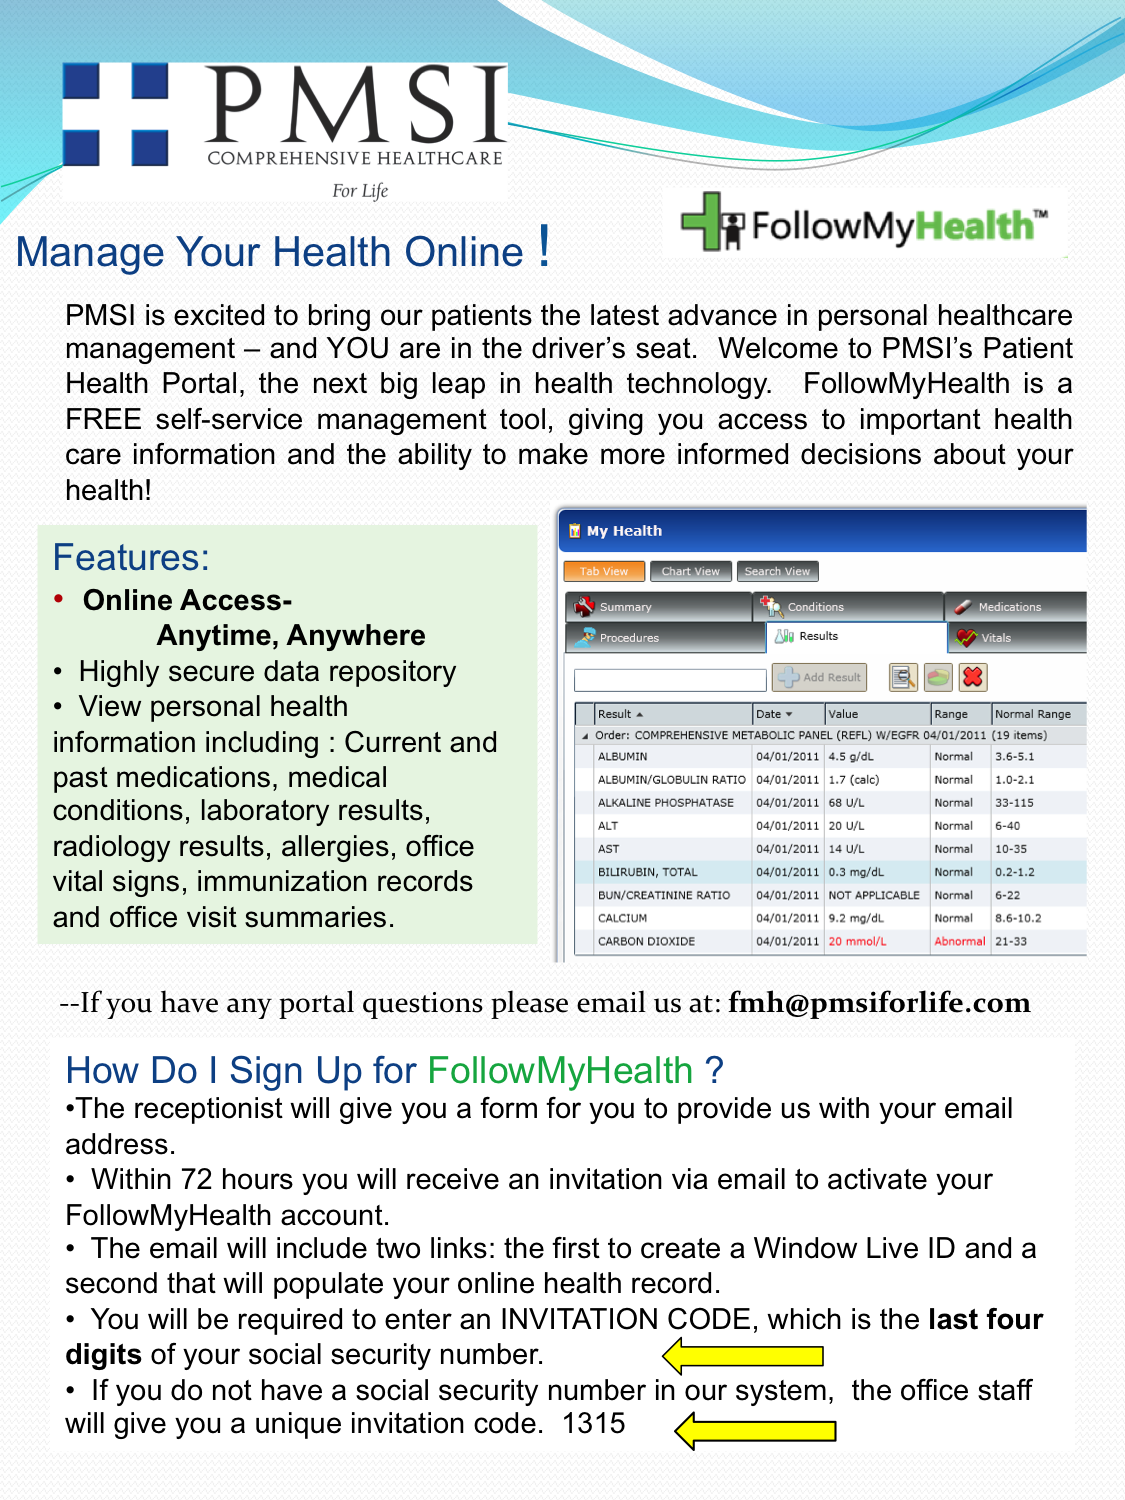 FollowMyHealth is PMSI's online patient health portal